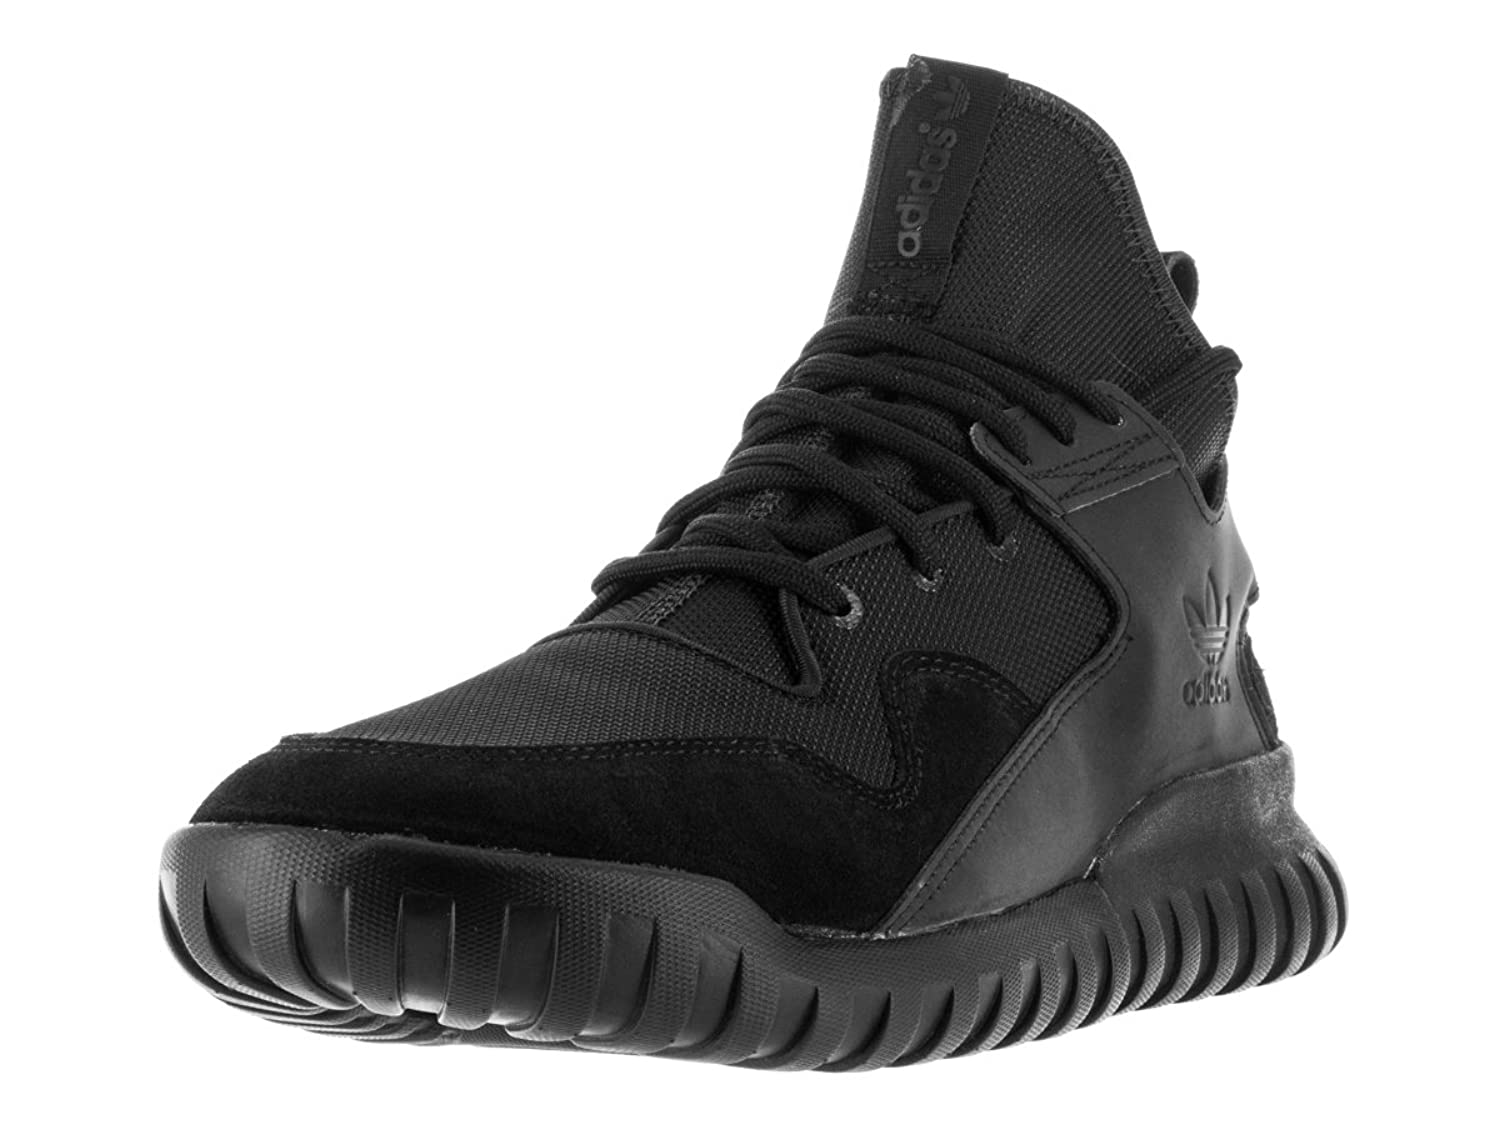 9 NEW adidas Originals TUBULAR X PRIMEKNIT Cheap Tubular X